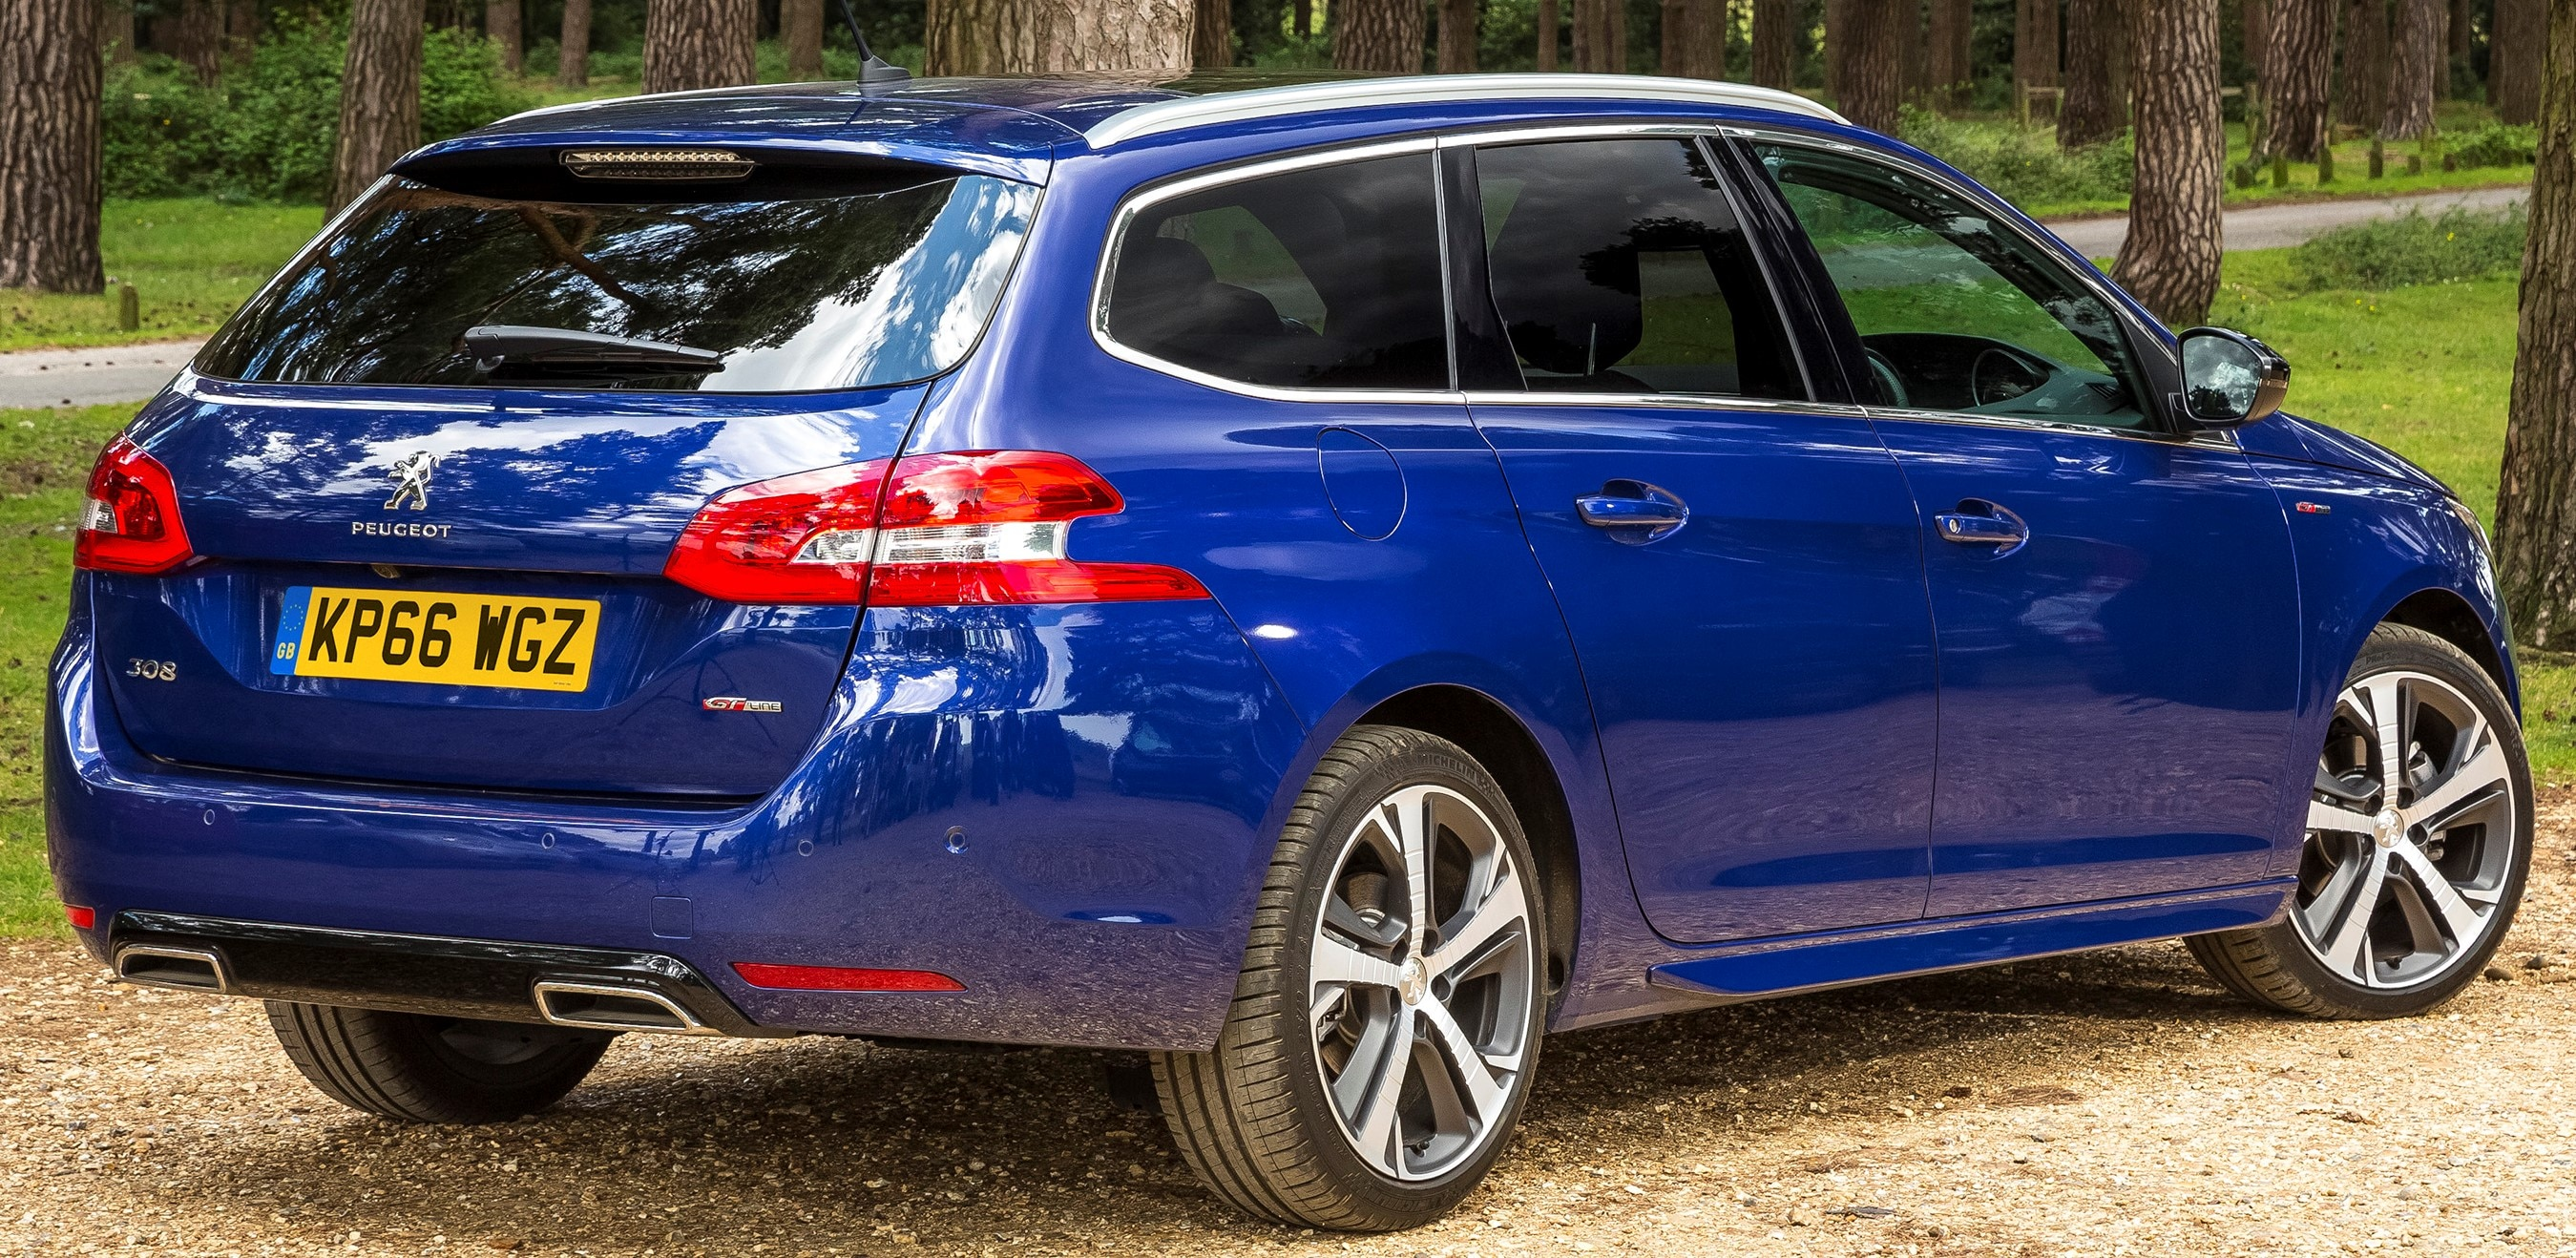 Peugeot 308 Review Fuse Box Cover Unfortunately This Softness Does Result In A Little Sloppiness Corners But For The Most Part Is Great To Drive